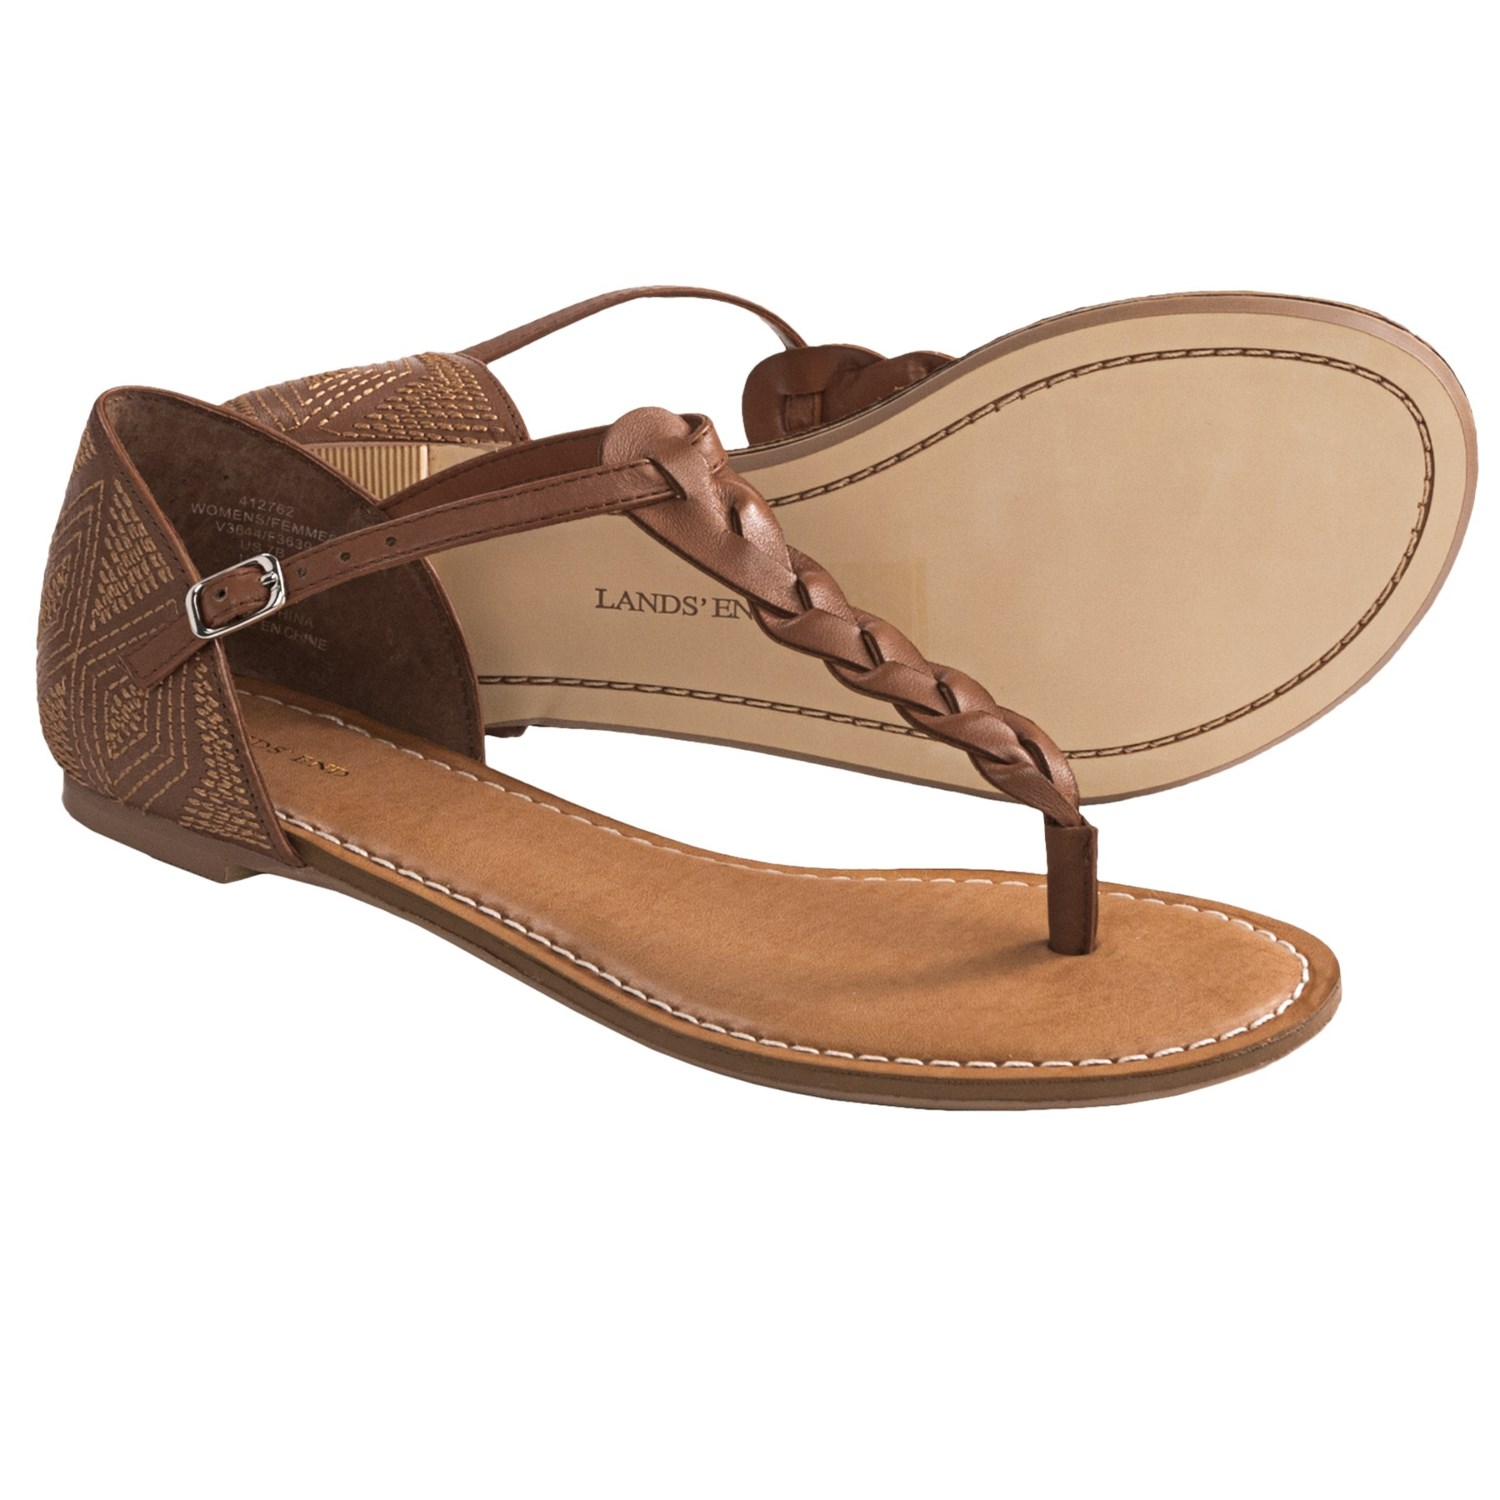 Womens sandals reddit - Do You Mean Like This